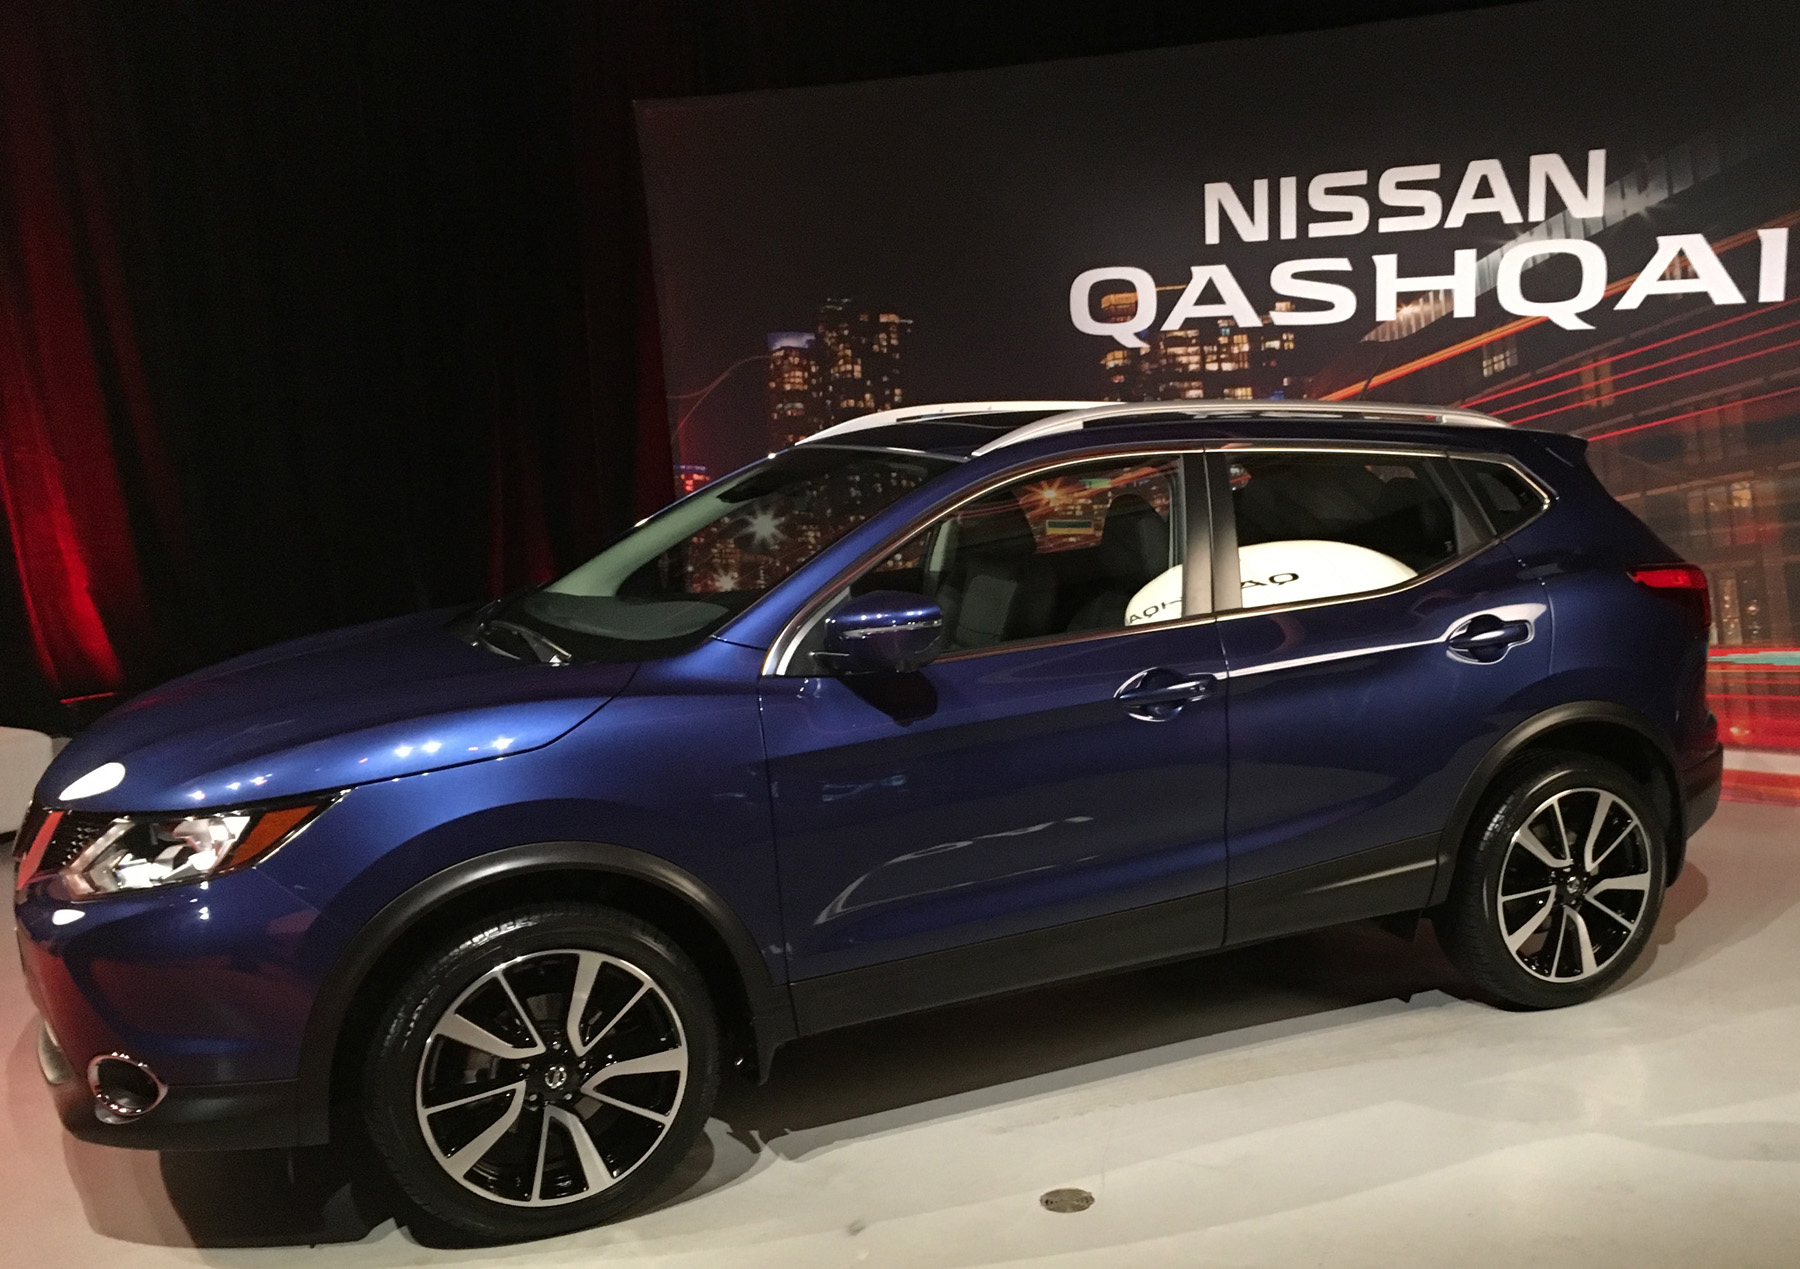 Nissan Qashqai Canada Review >> Qashqai Finally Makes It To Canada Wheels Ca